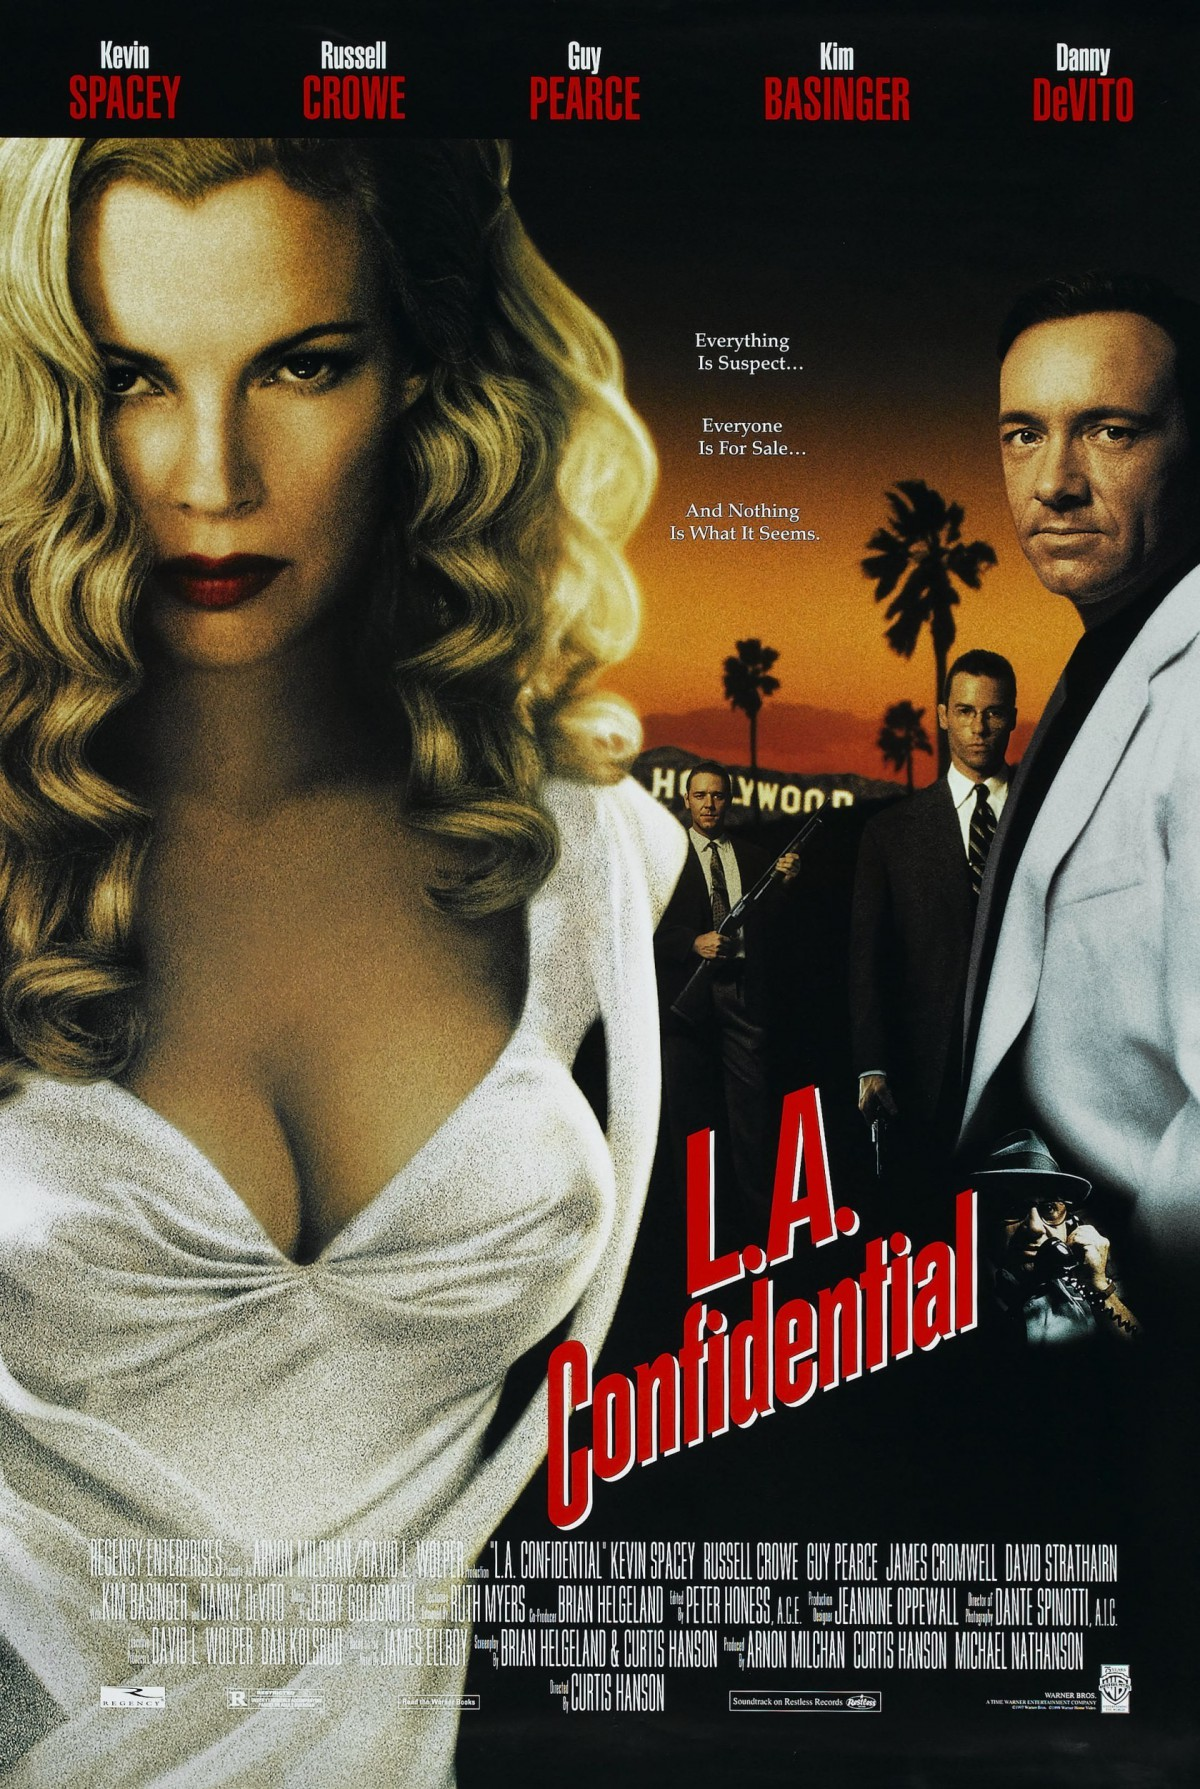 9. L.A. Confidential (1997)